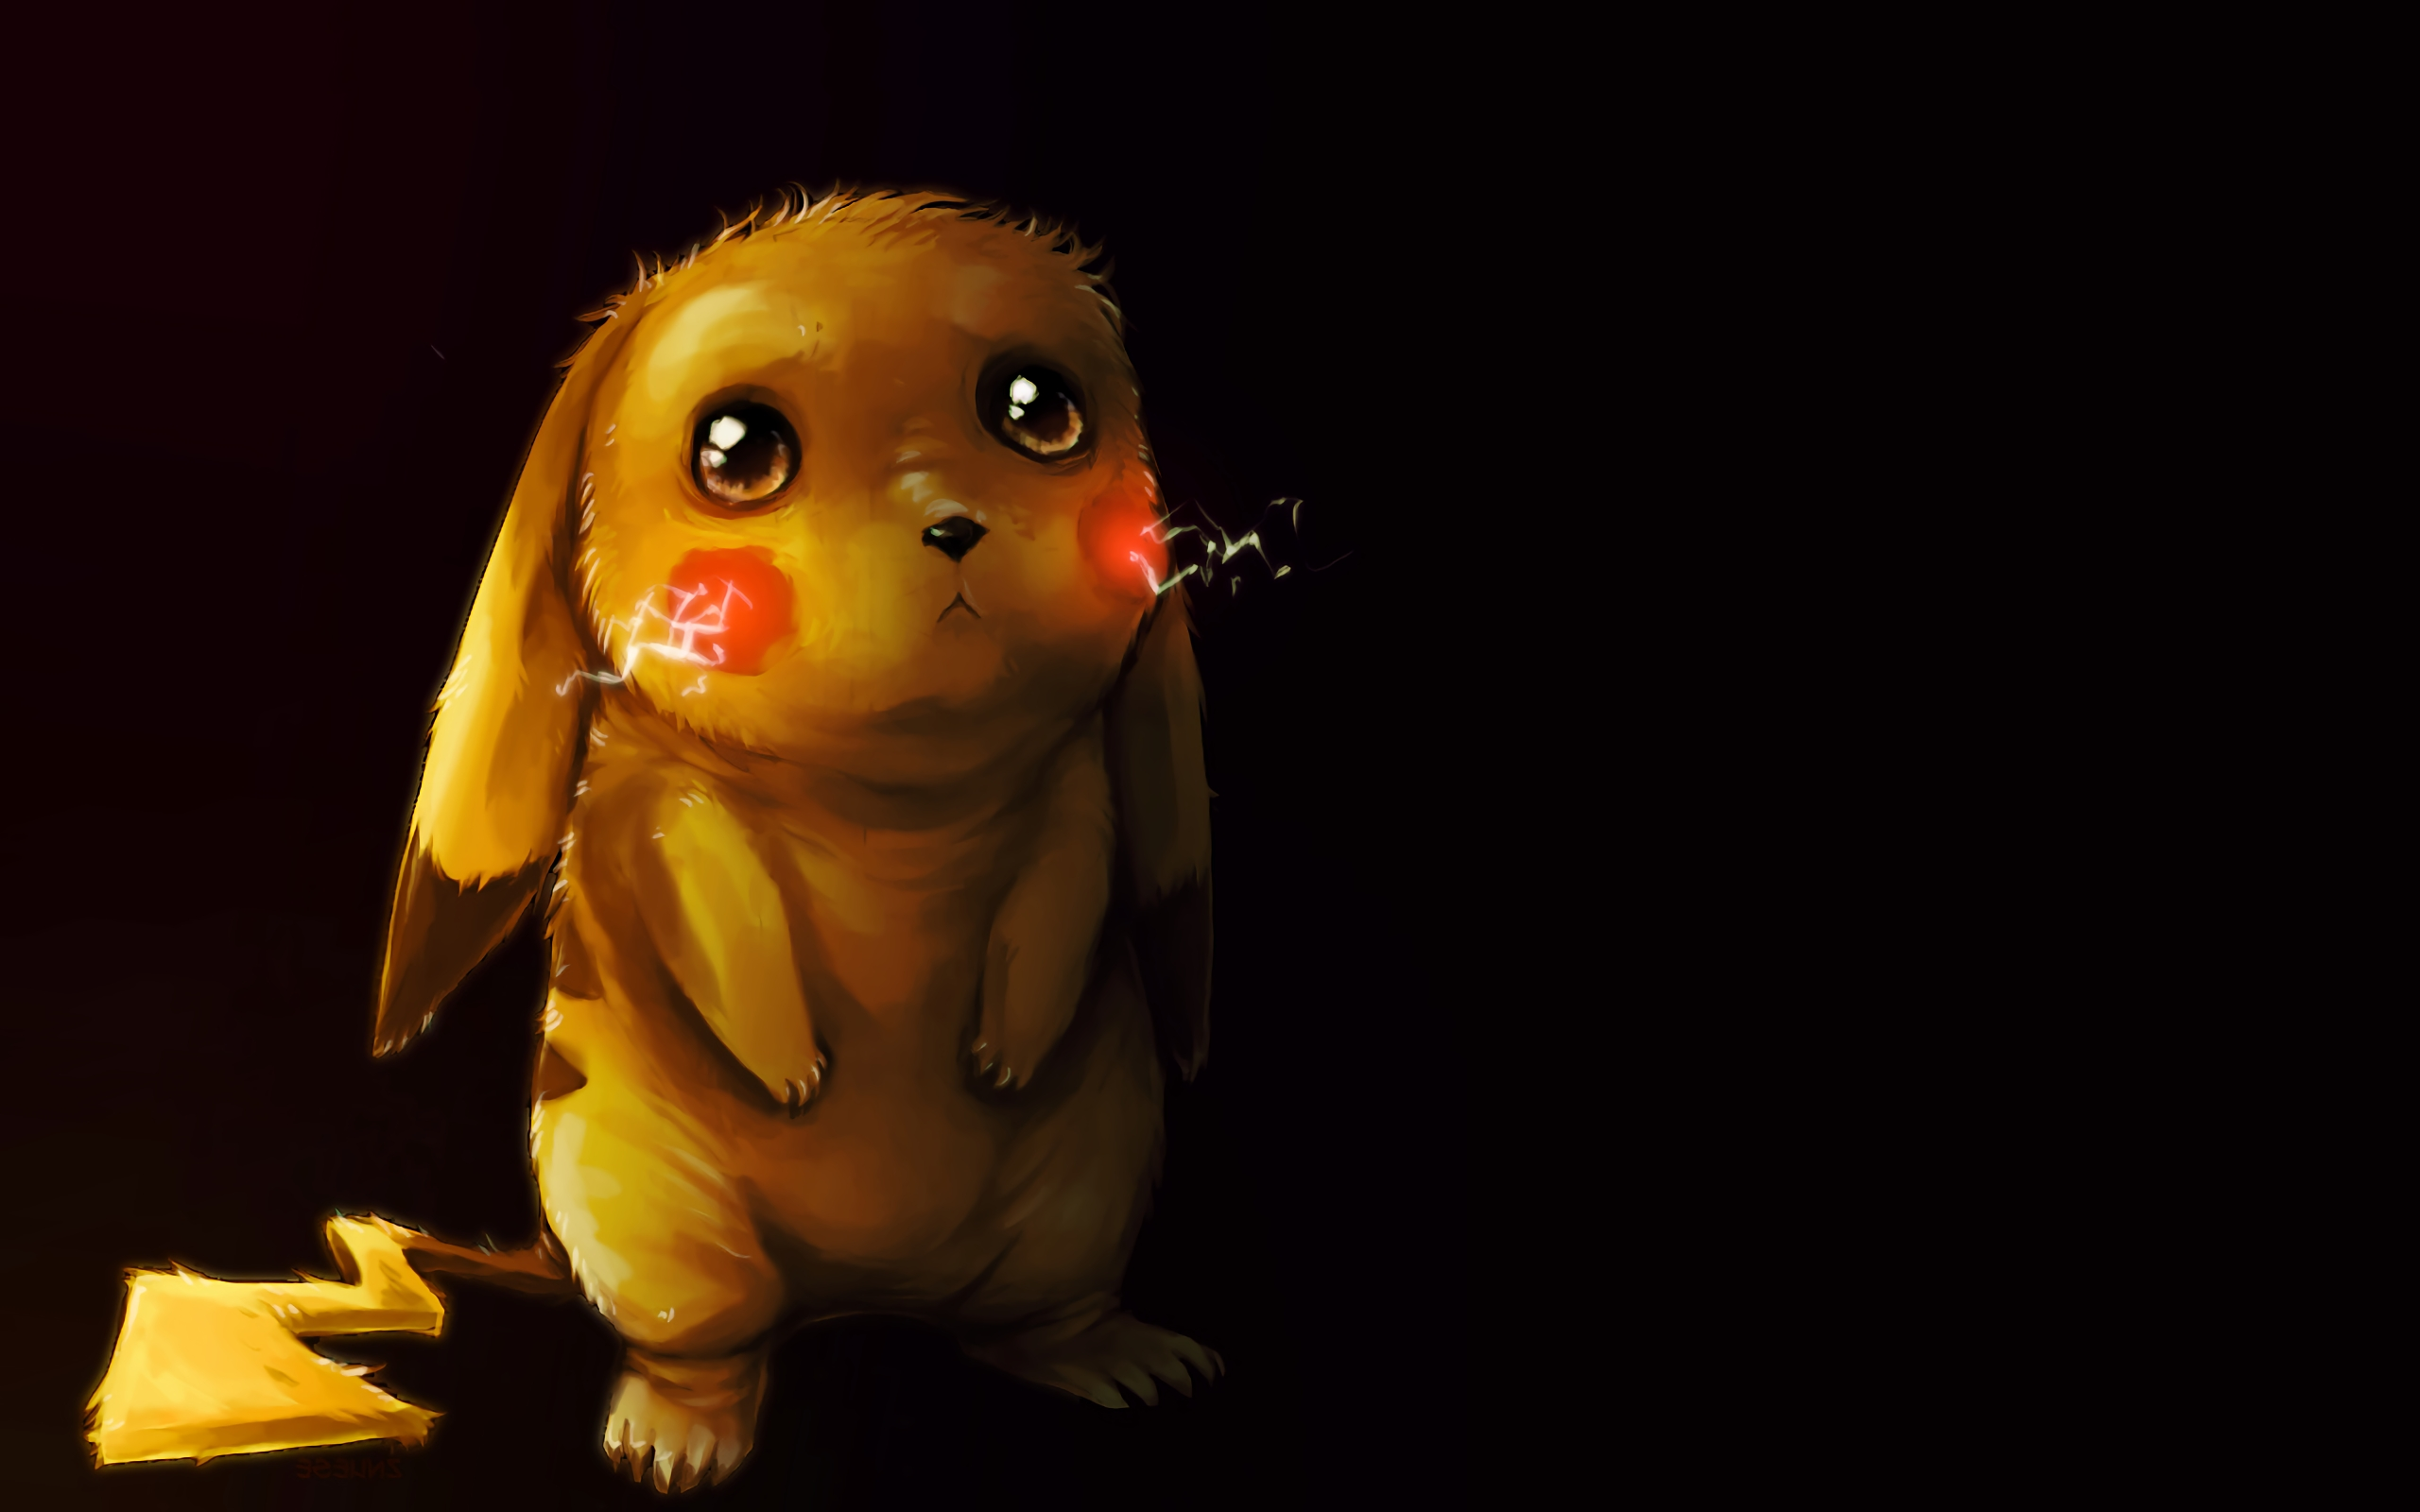 Anime Wallpaper Sad Pikachu fanart